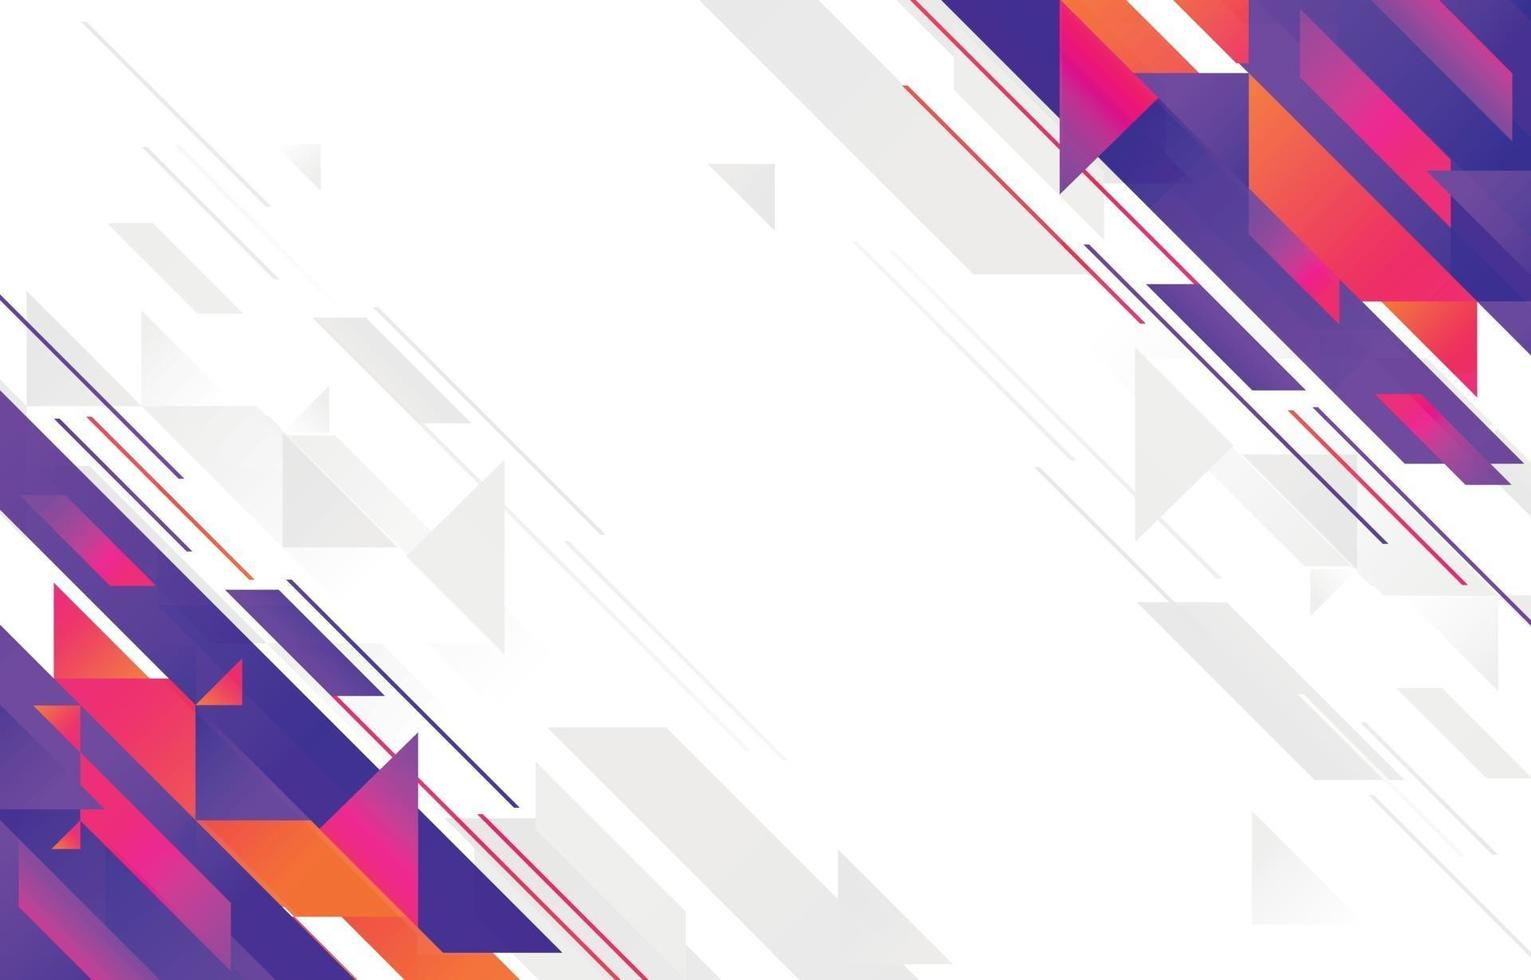 Abstract Geometric Flat Design Background vector